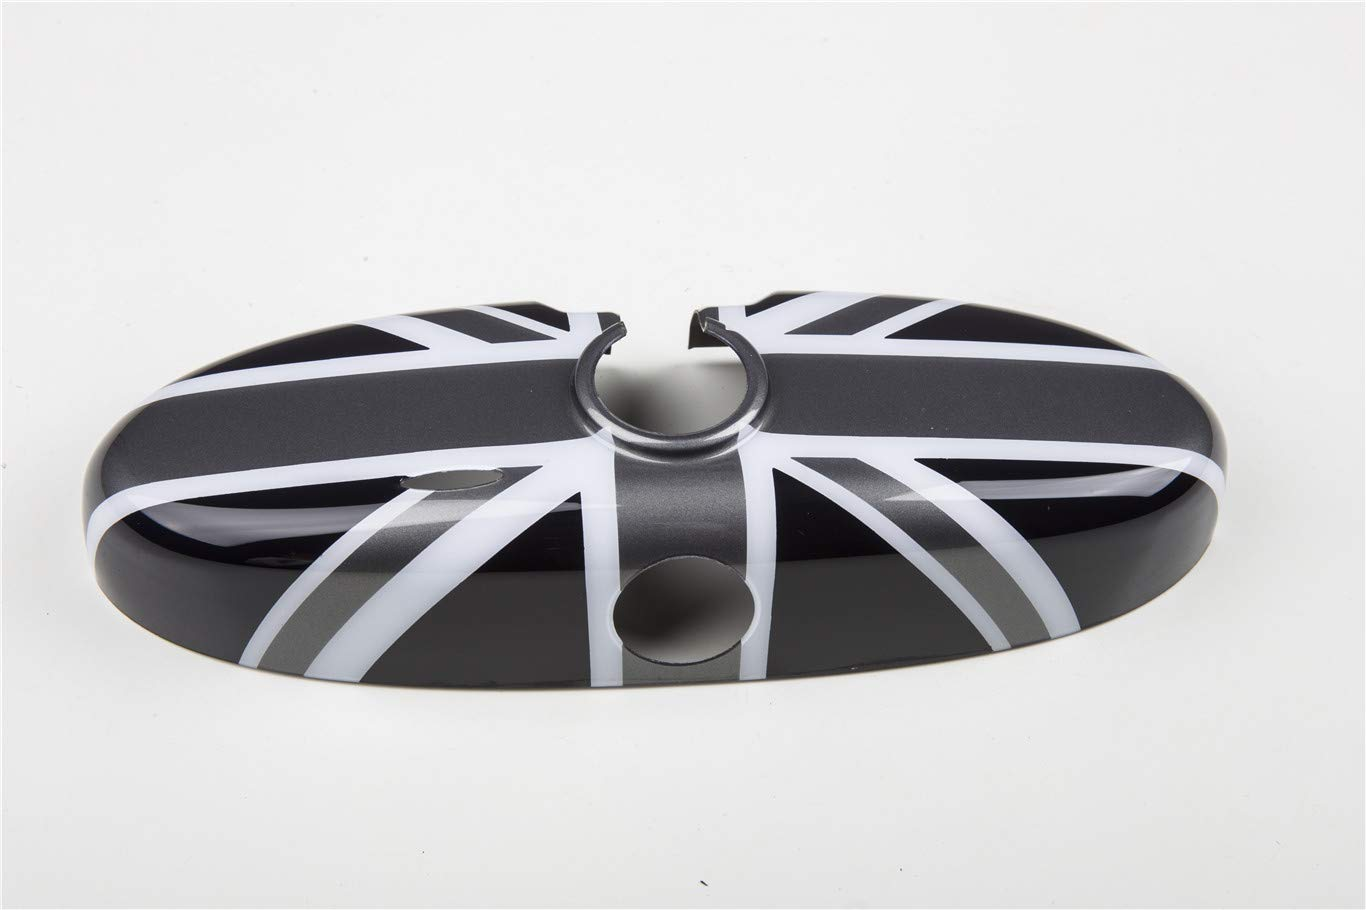 HDX Inner Rearview Room Mirror Cover Trim Cap ABS for Mini Cooper R55 Clubman R56 Hatchback R57 Covertible R58 Coupe R59 Roadster R60 Countryman R61 Paceman Black